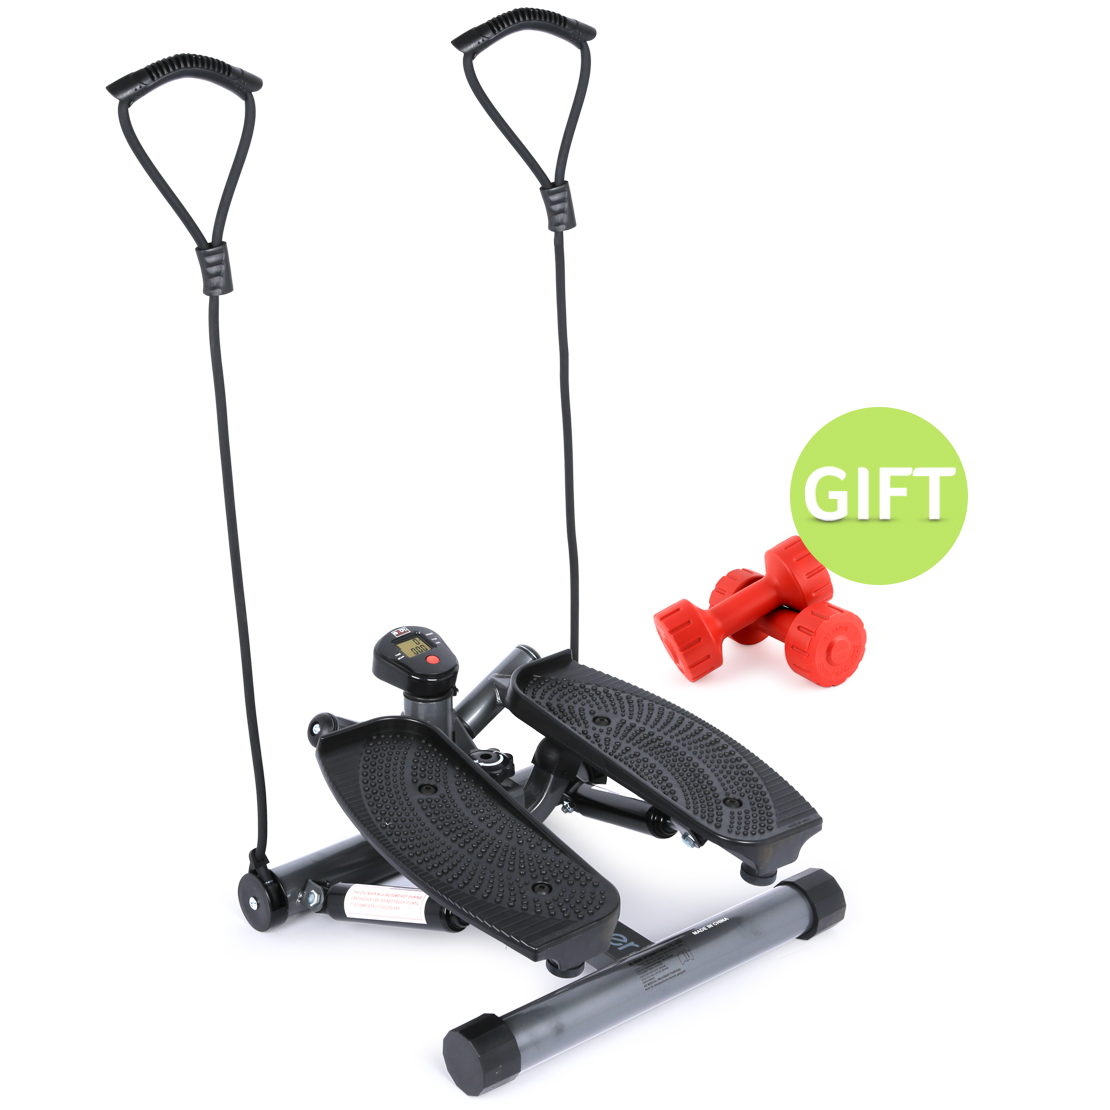 Twist Stepper with Latex Cords with Gift